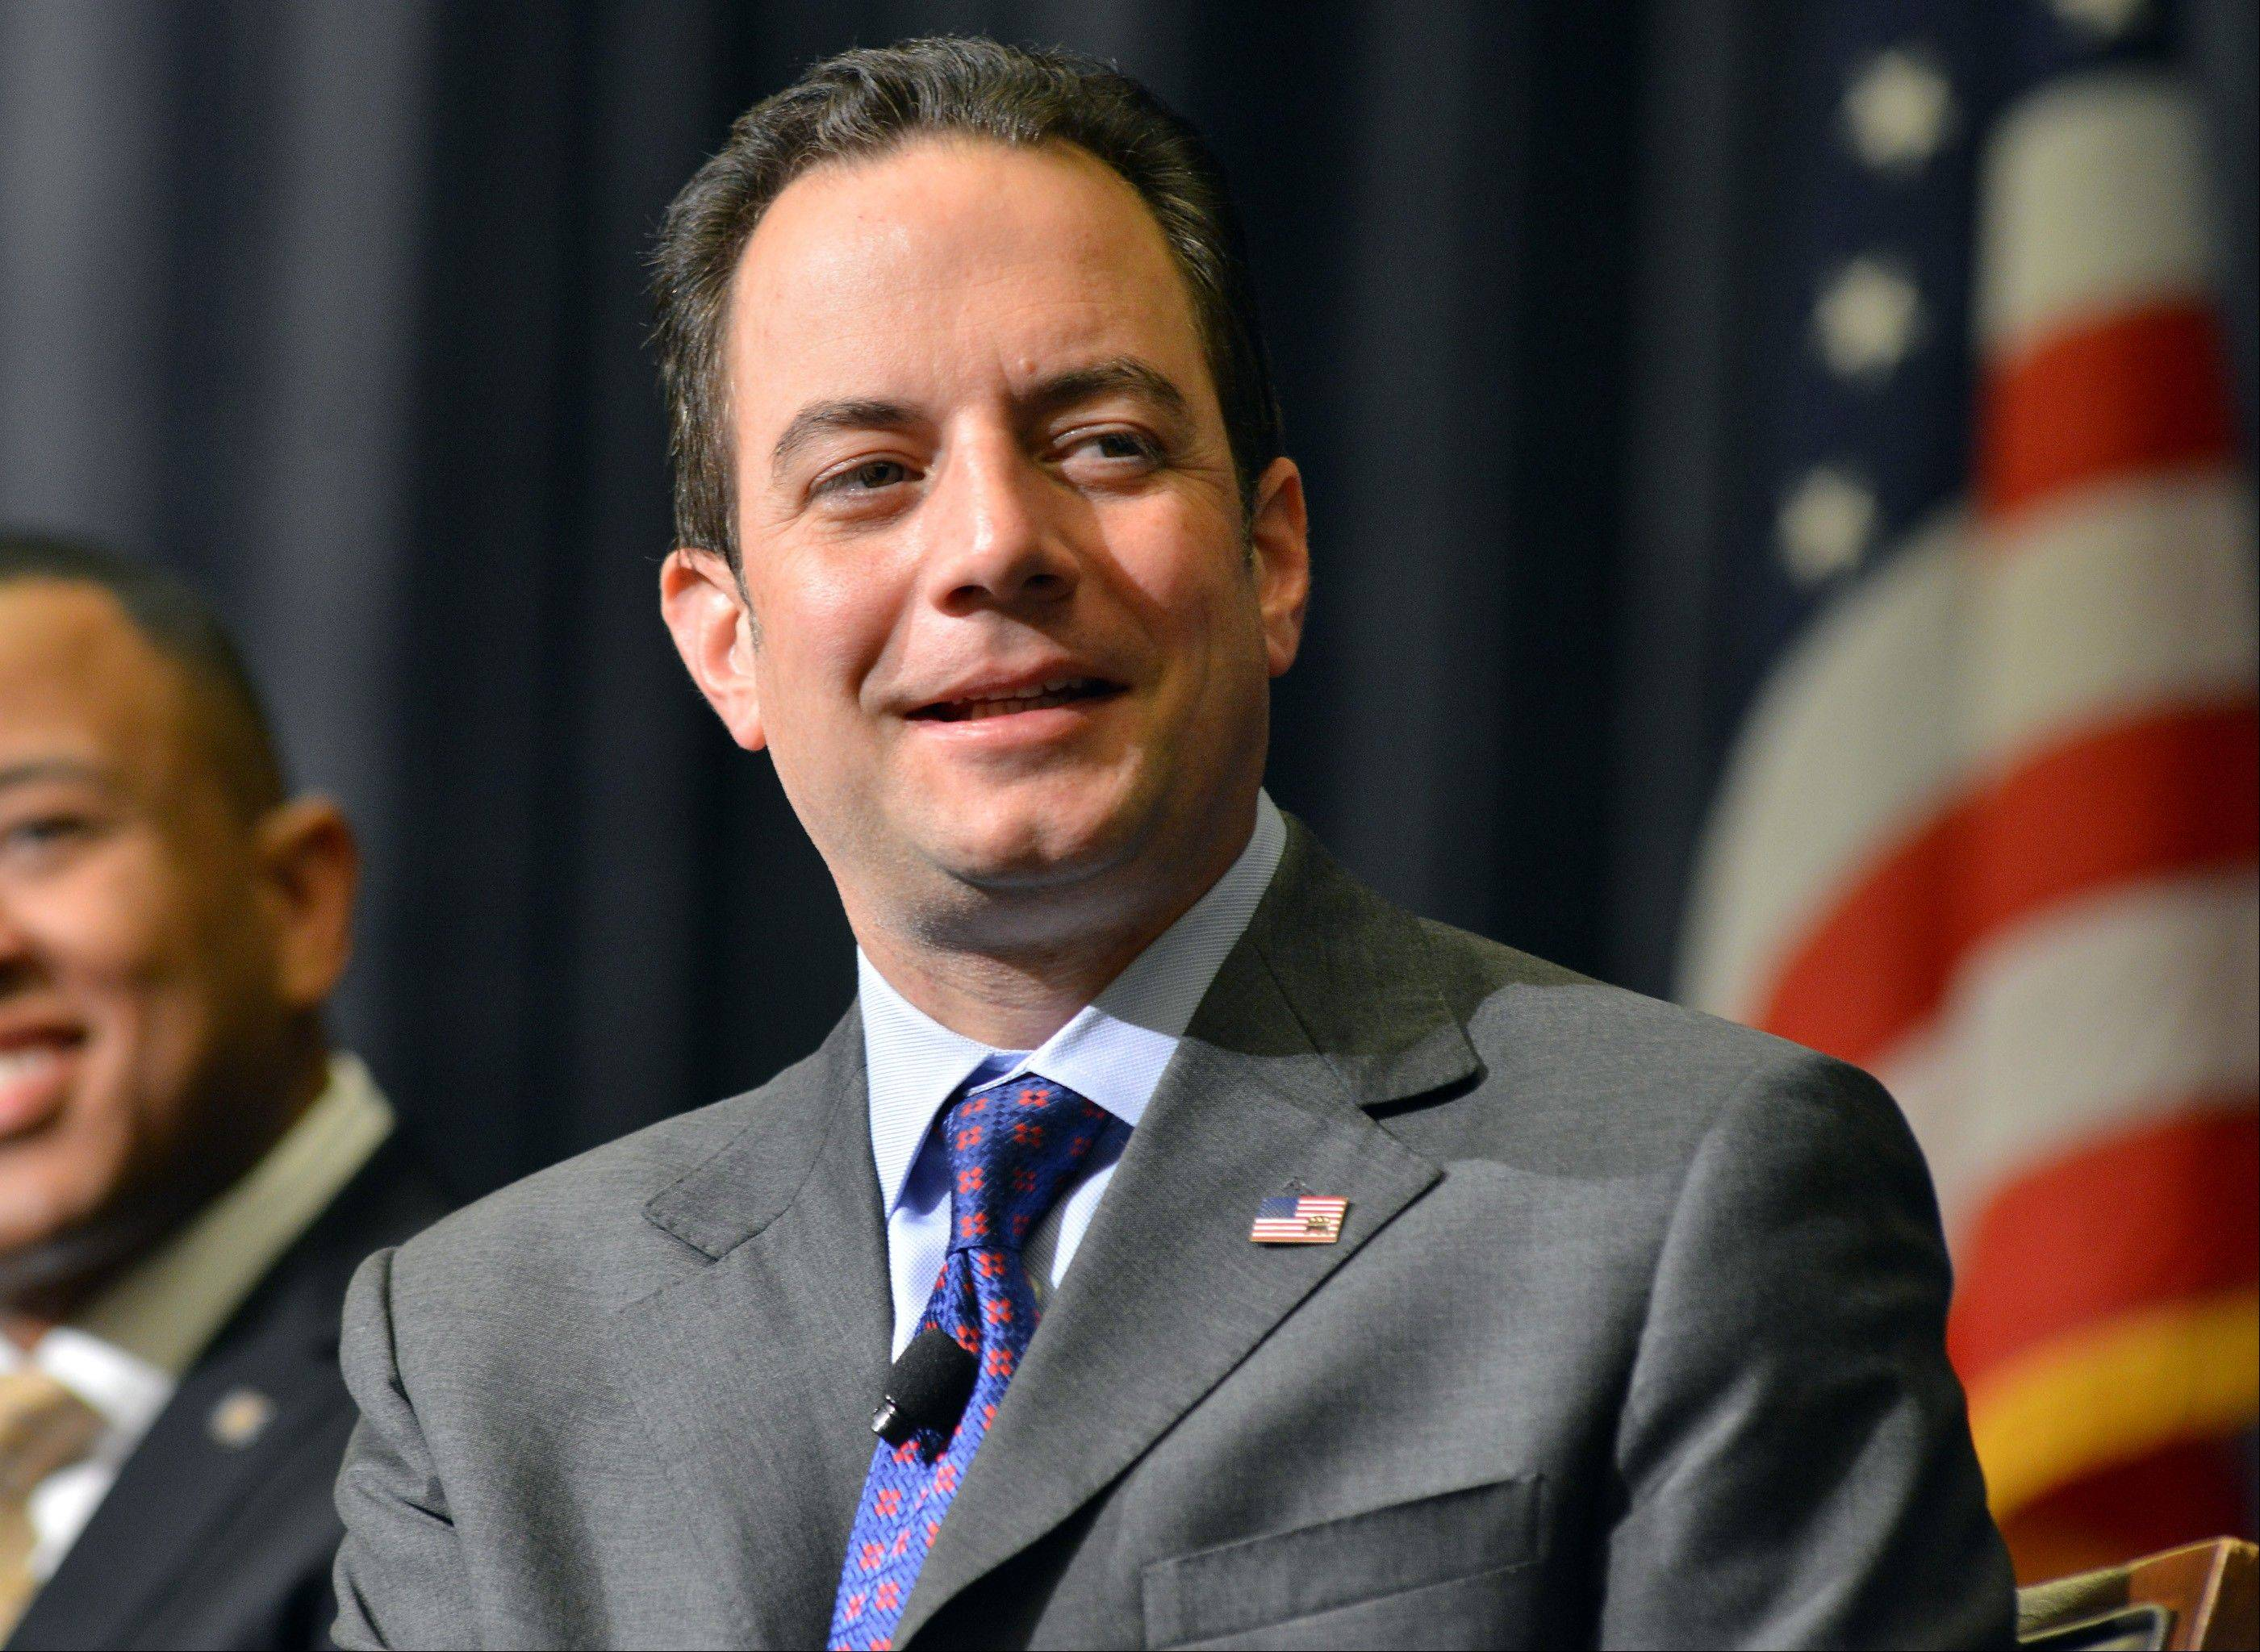 Chairman Reince Priebus and the Republican National Committee began running ads in 40 media markets Tuesday, mostly targeting incumbent senators who supported President Barack Obama's health care program.